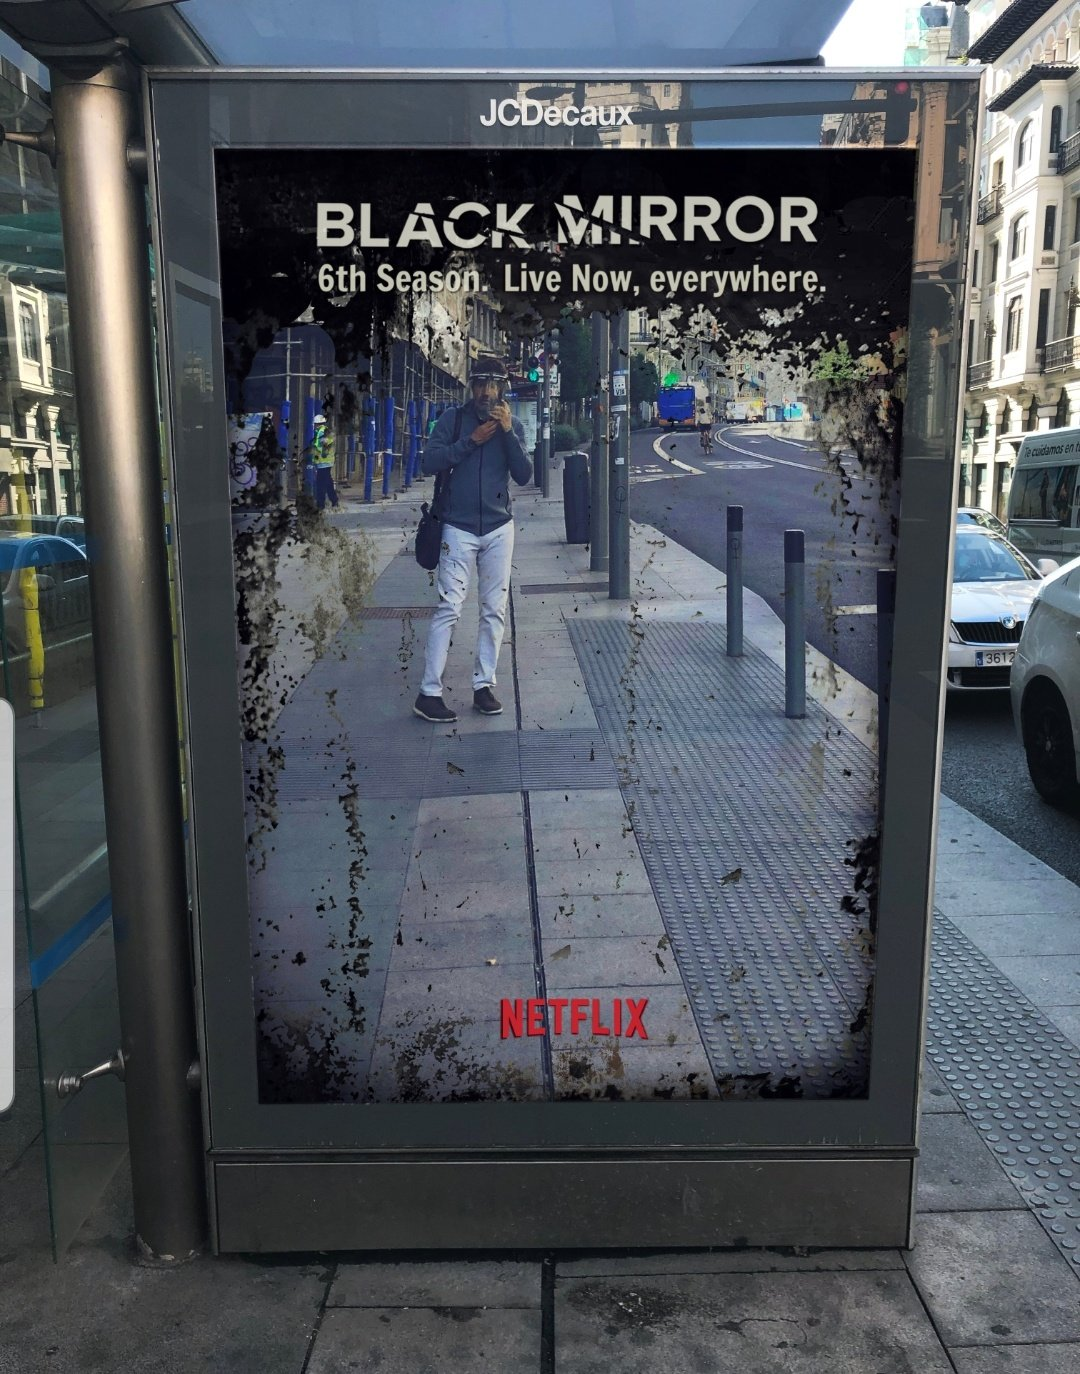 An image of a bus shelter ad. The ad is a mirror with black around the edges. At the top of the mirror it says